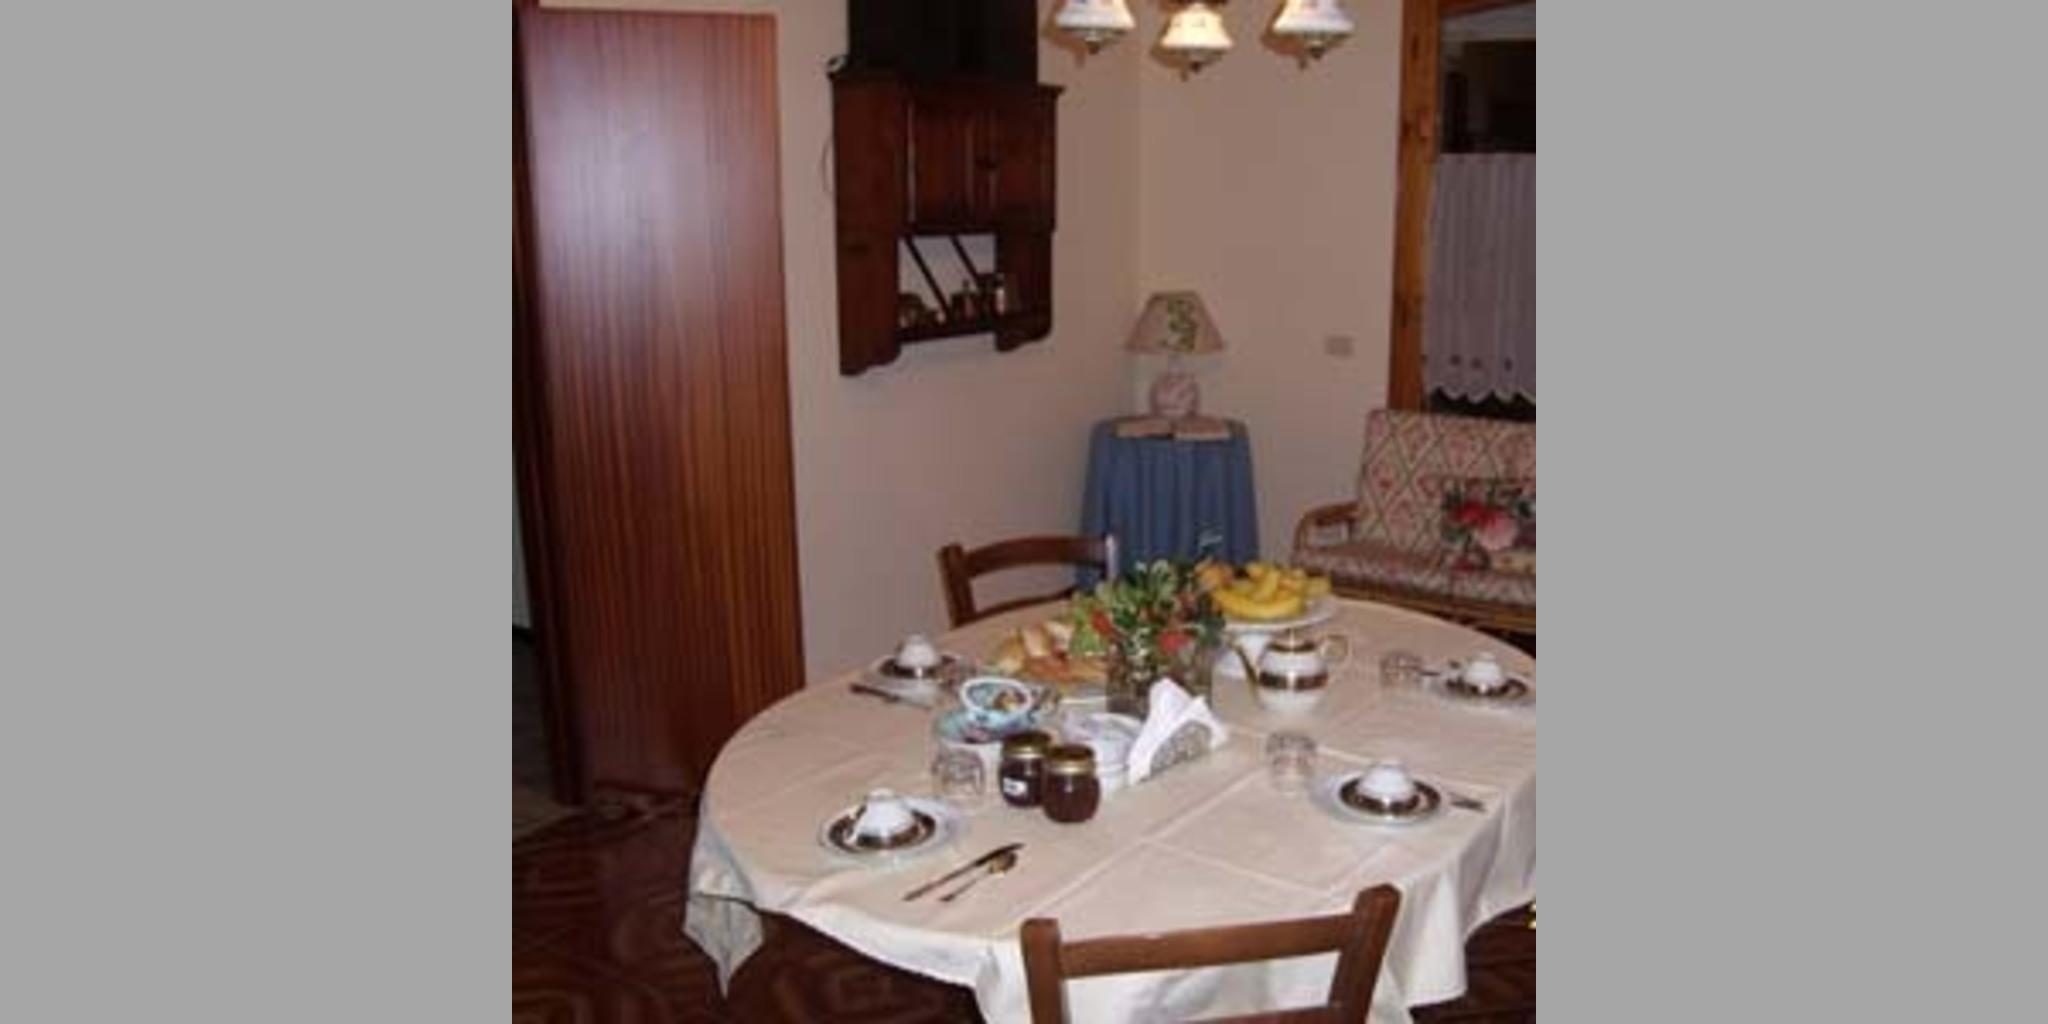 Bed & Breakfast Mercato Saraceno - Saraceno